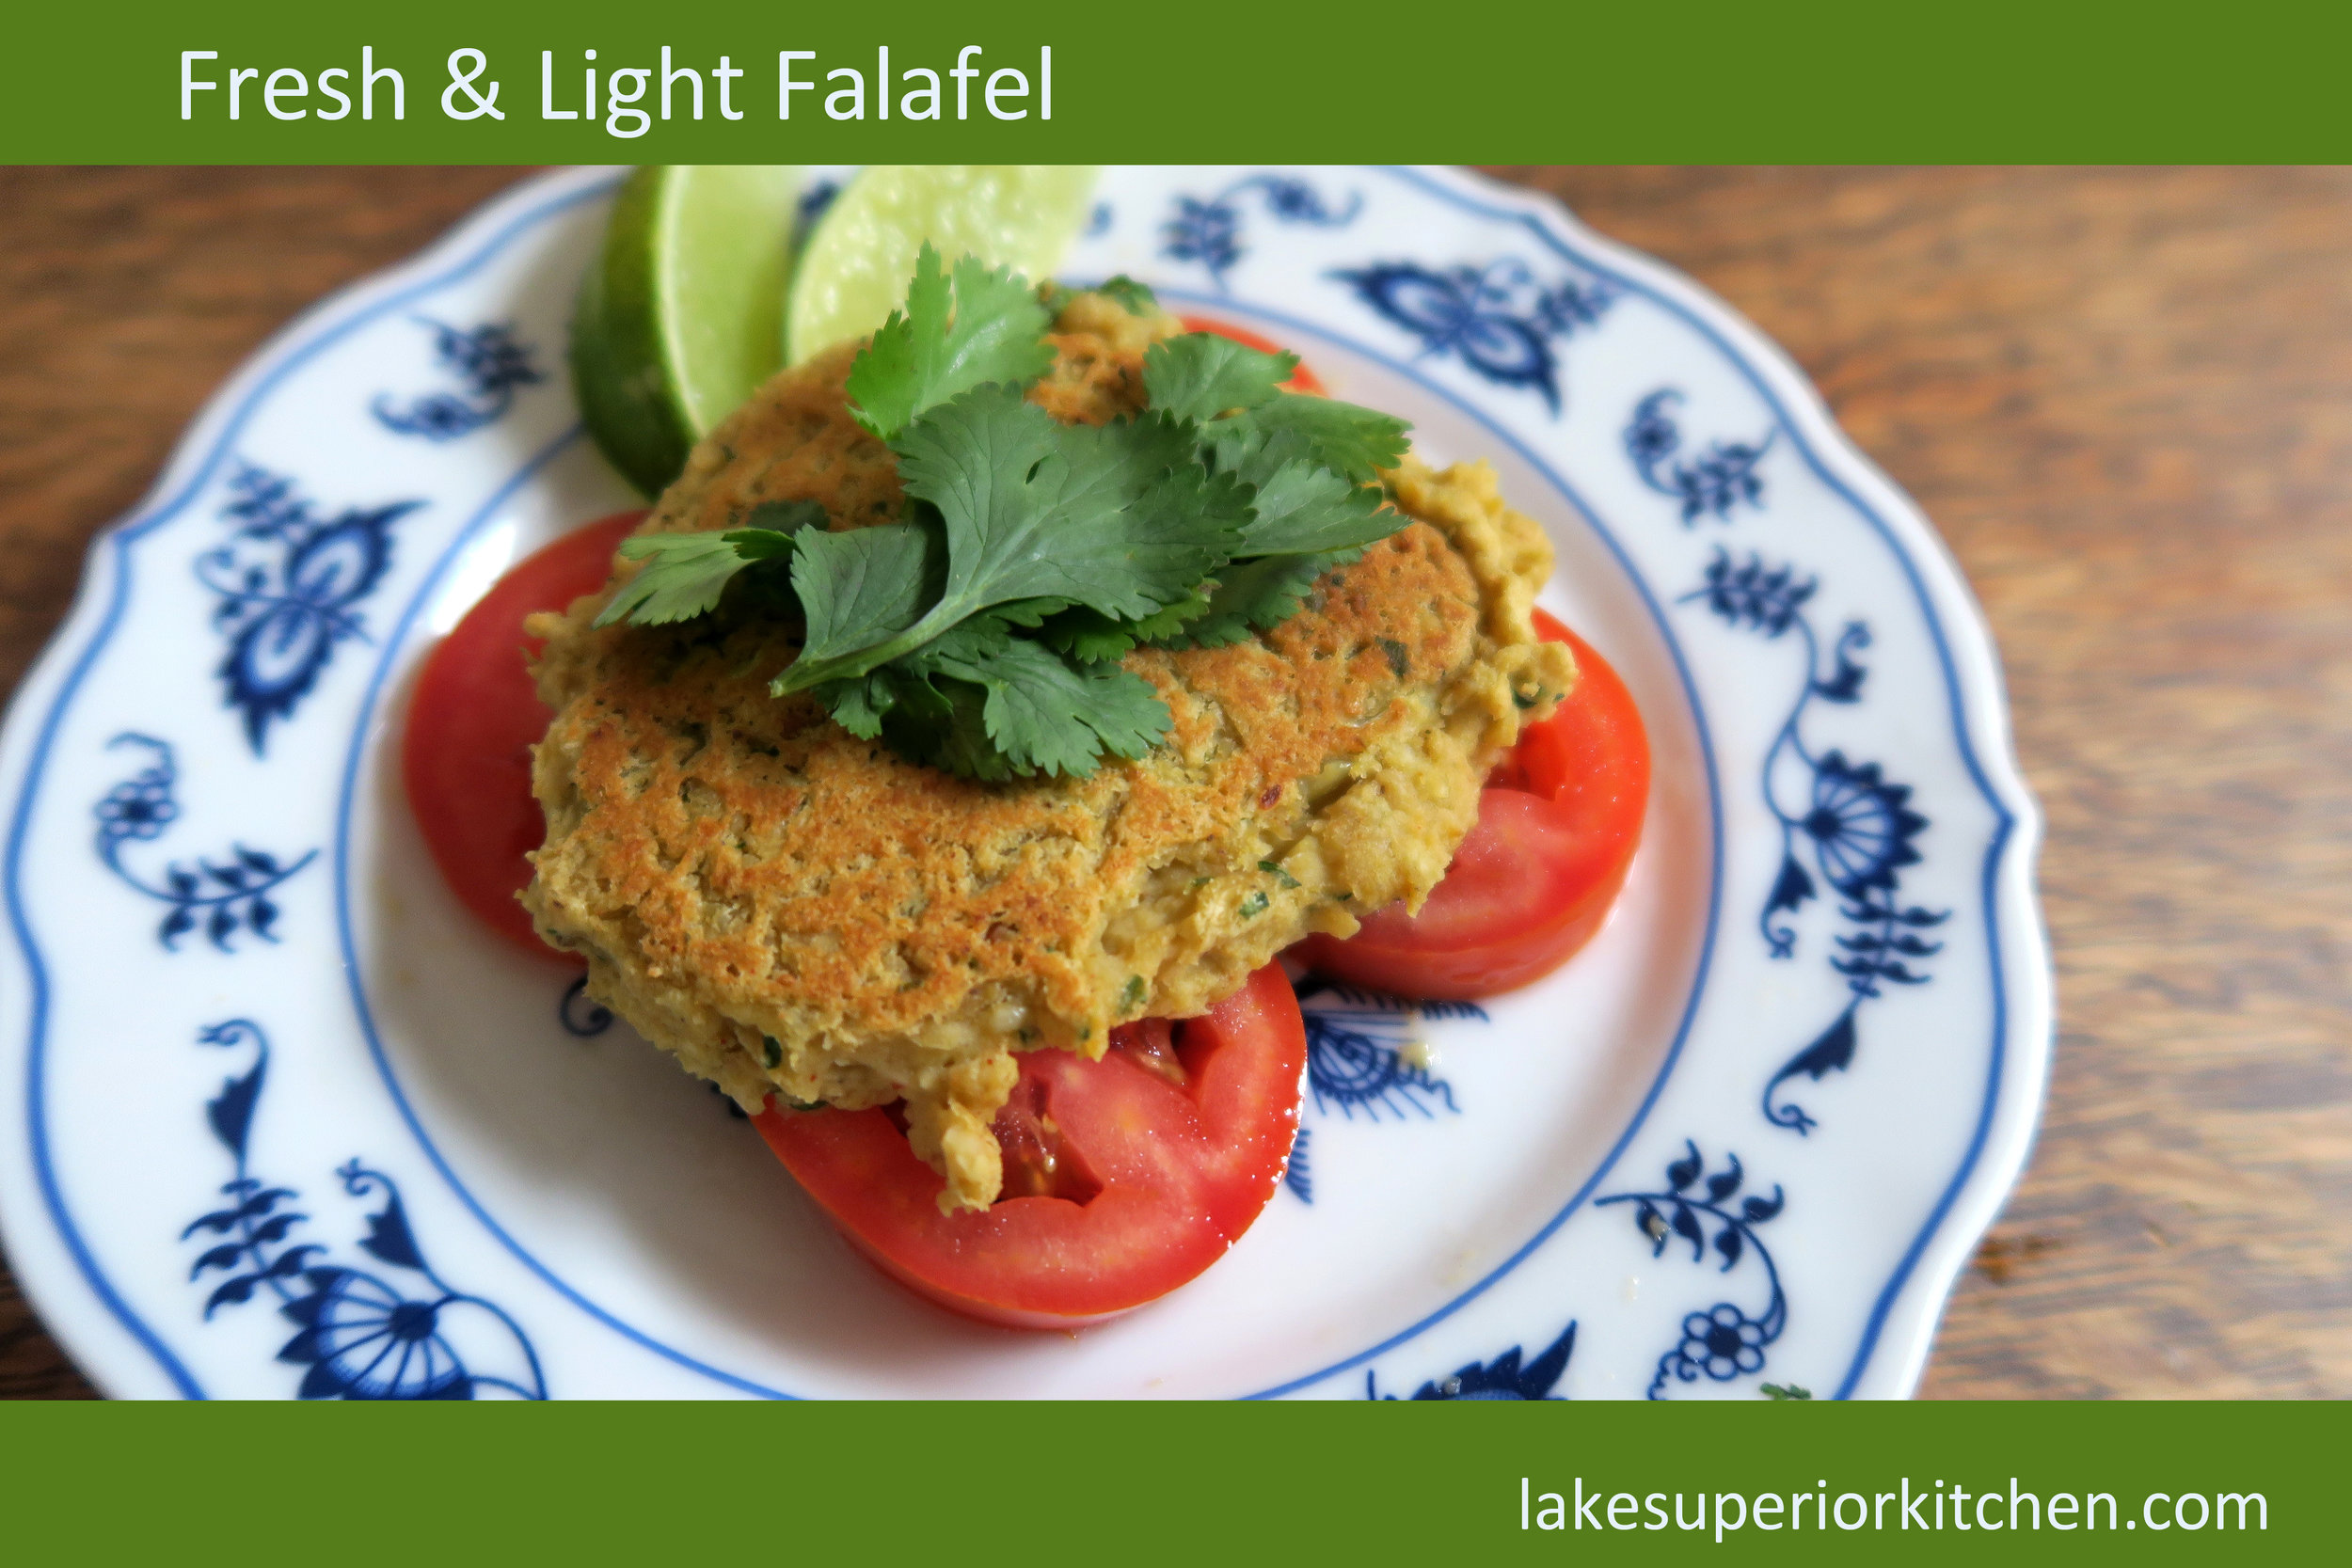 falafel, healthy recipes, vegetarian, vegan, chickpea, garbanzo beans, bean recipe, cilantro, appetizer, whole30 reintroduction, healthy recipe, meatless, grain free, gluten free, vegan, vegetarian, lake superior kitchen, duluth food